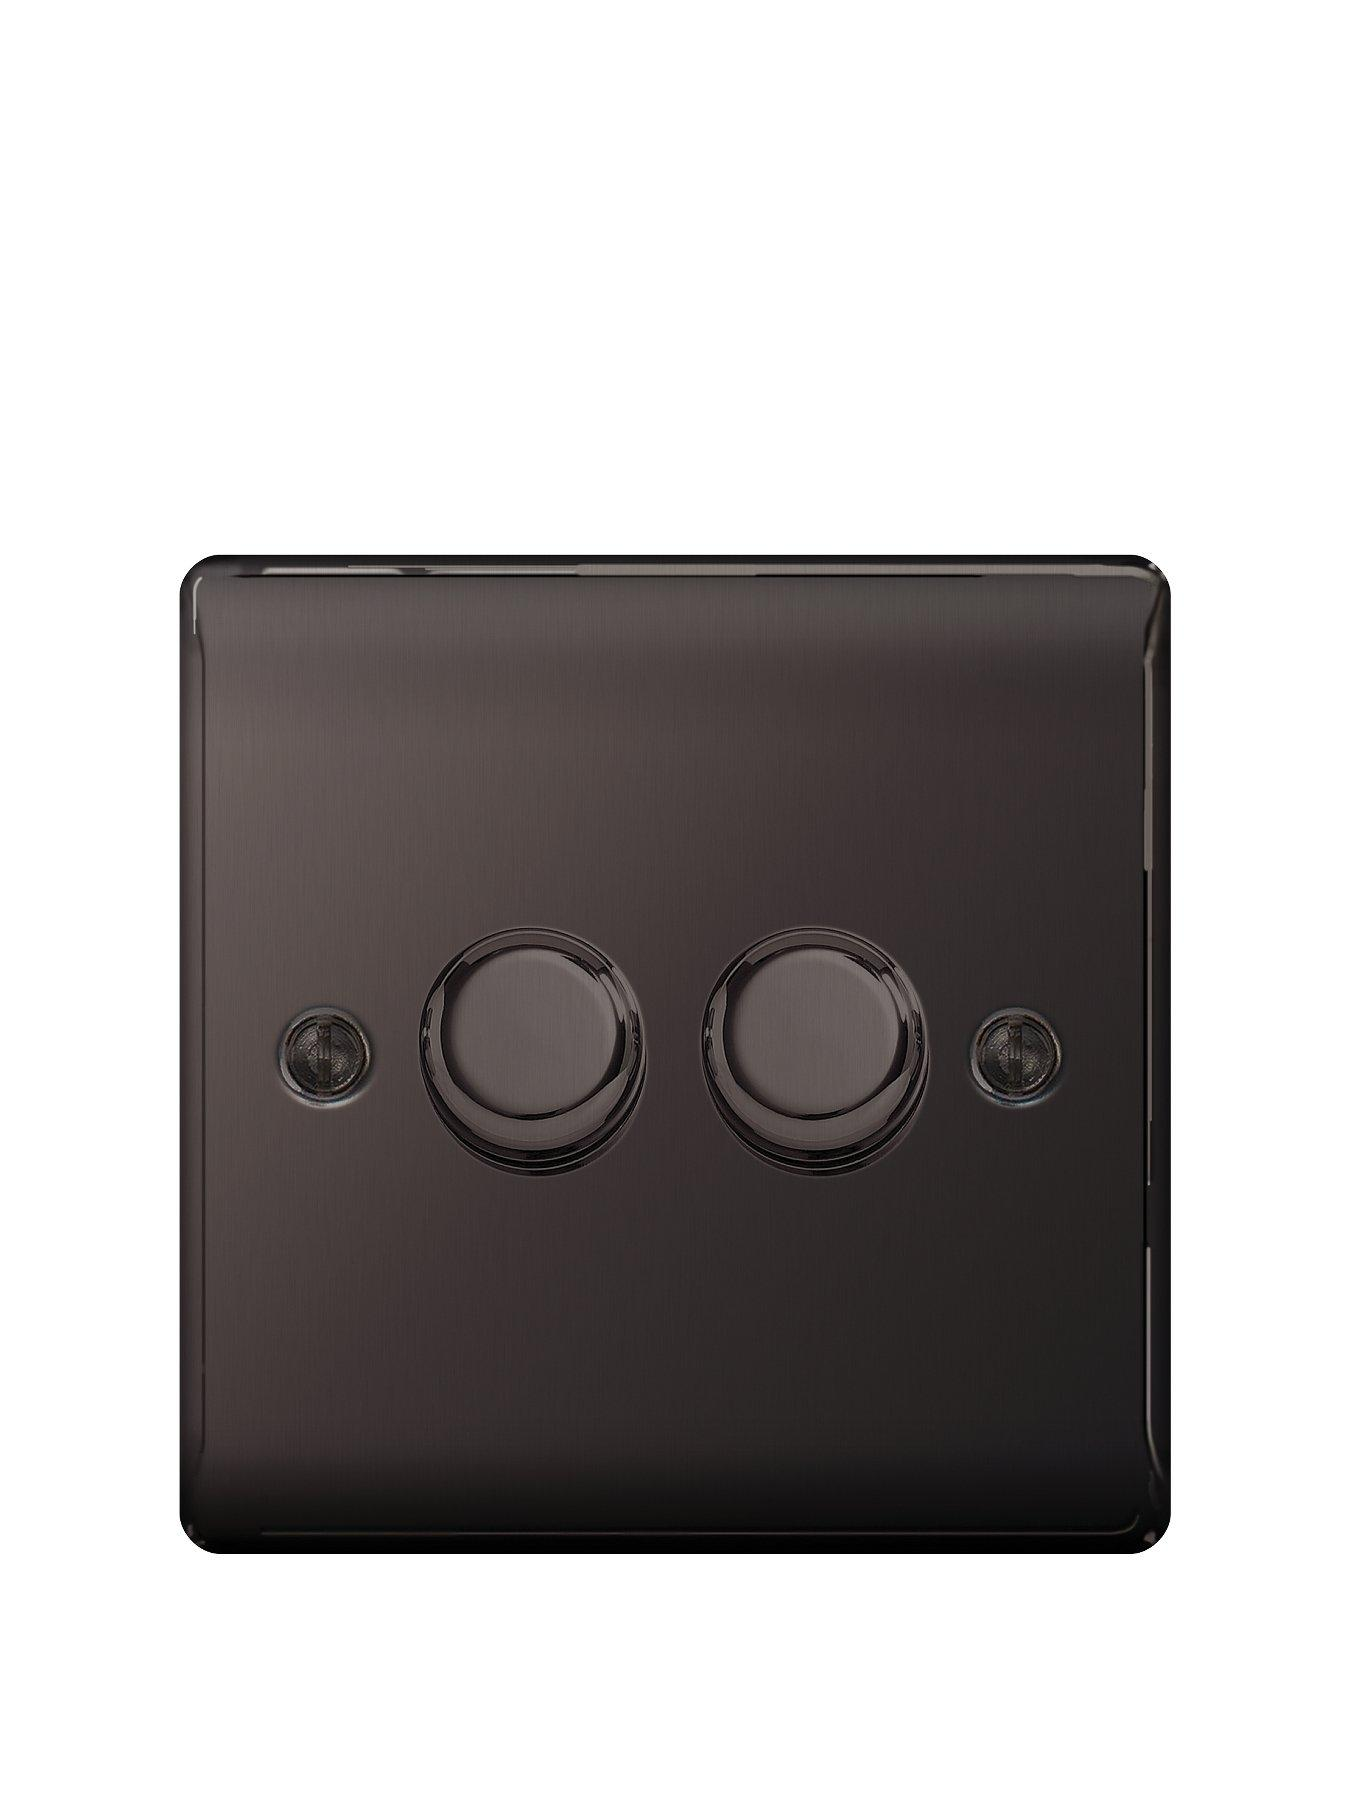 Compare prices for British General Electrical Raised 2G Dimmer Switch - Black Nickel